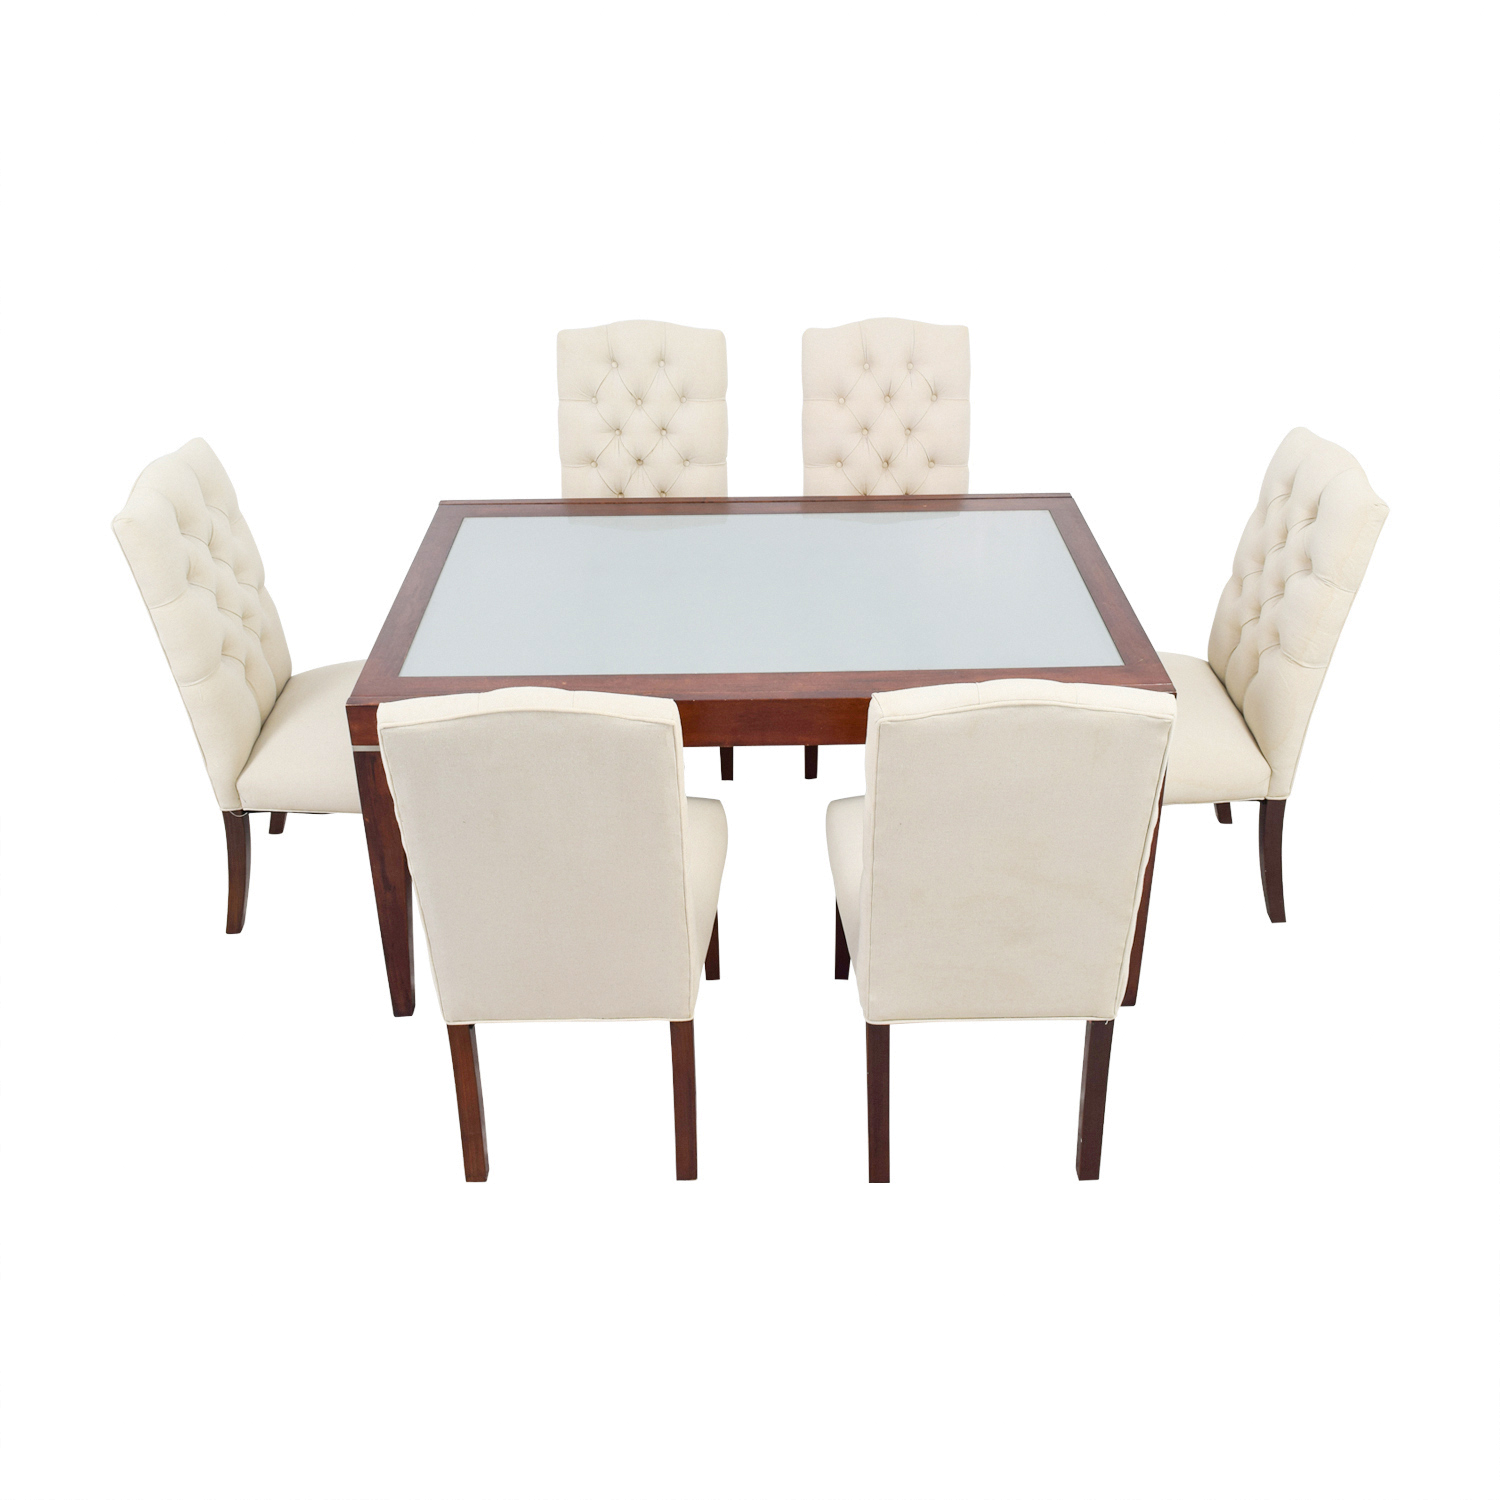 West Elm West Elm Extendable Glass & Wood Dining Set with Upholstered Tufted Chairs second hand